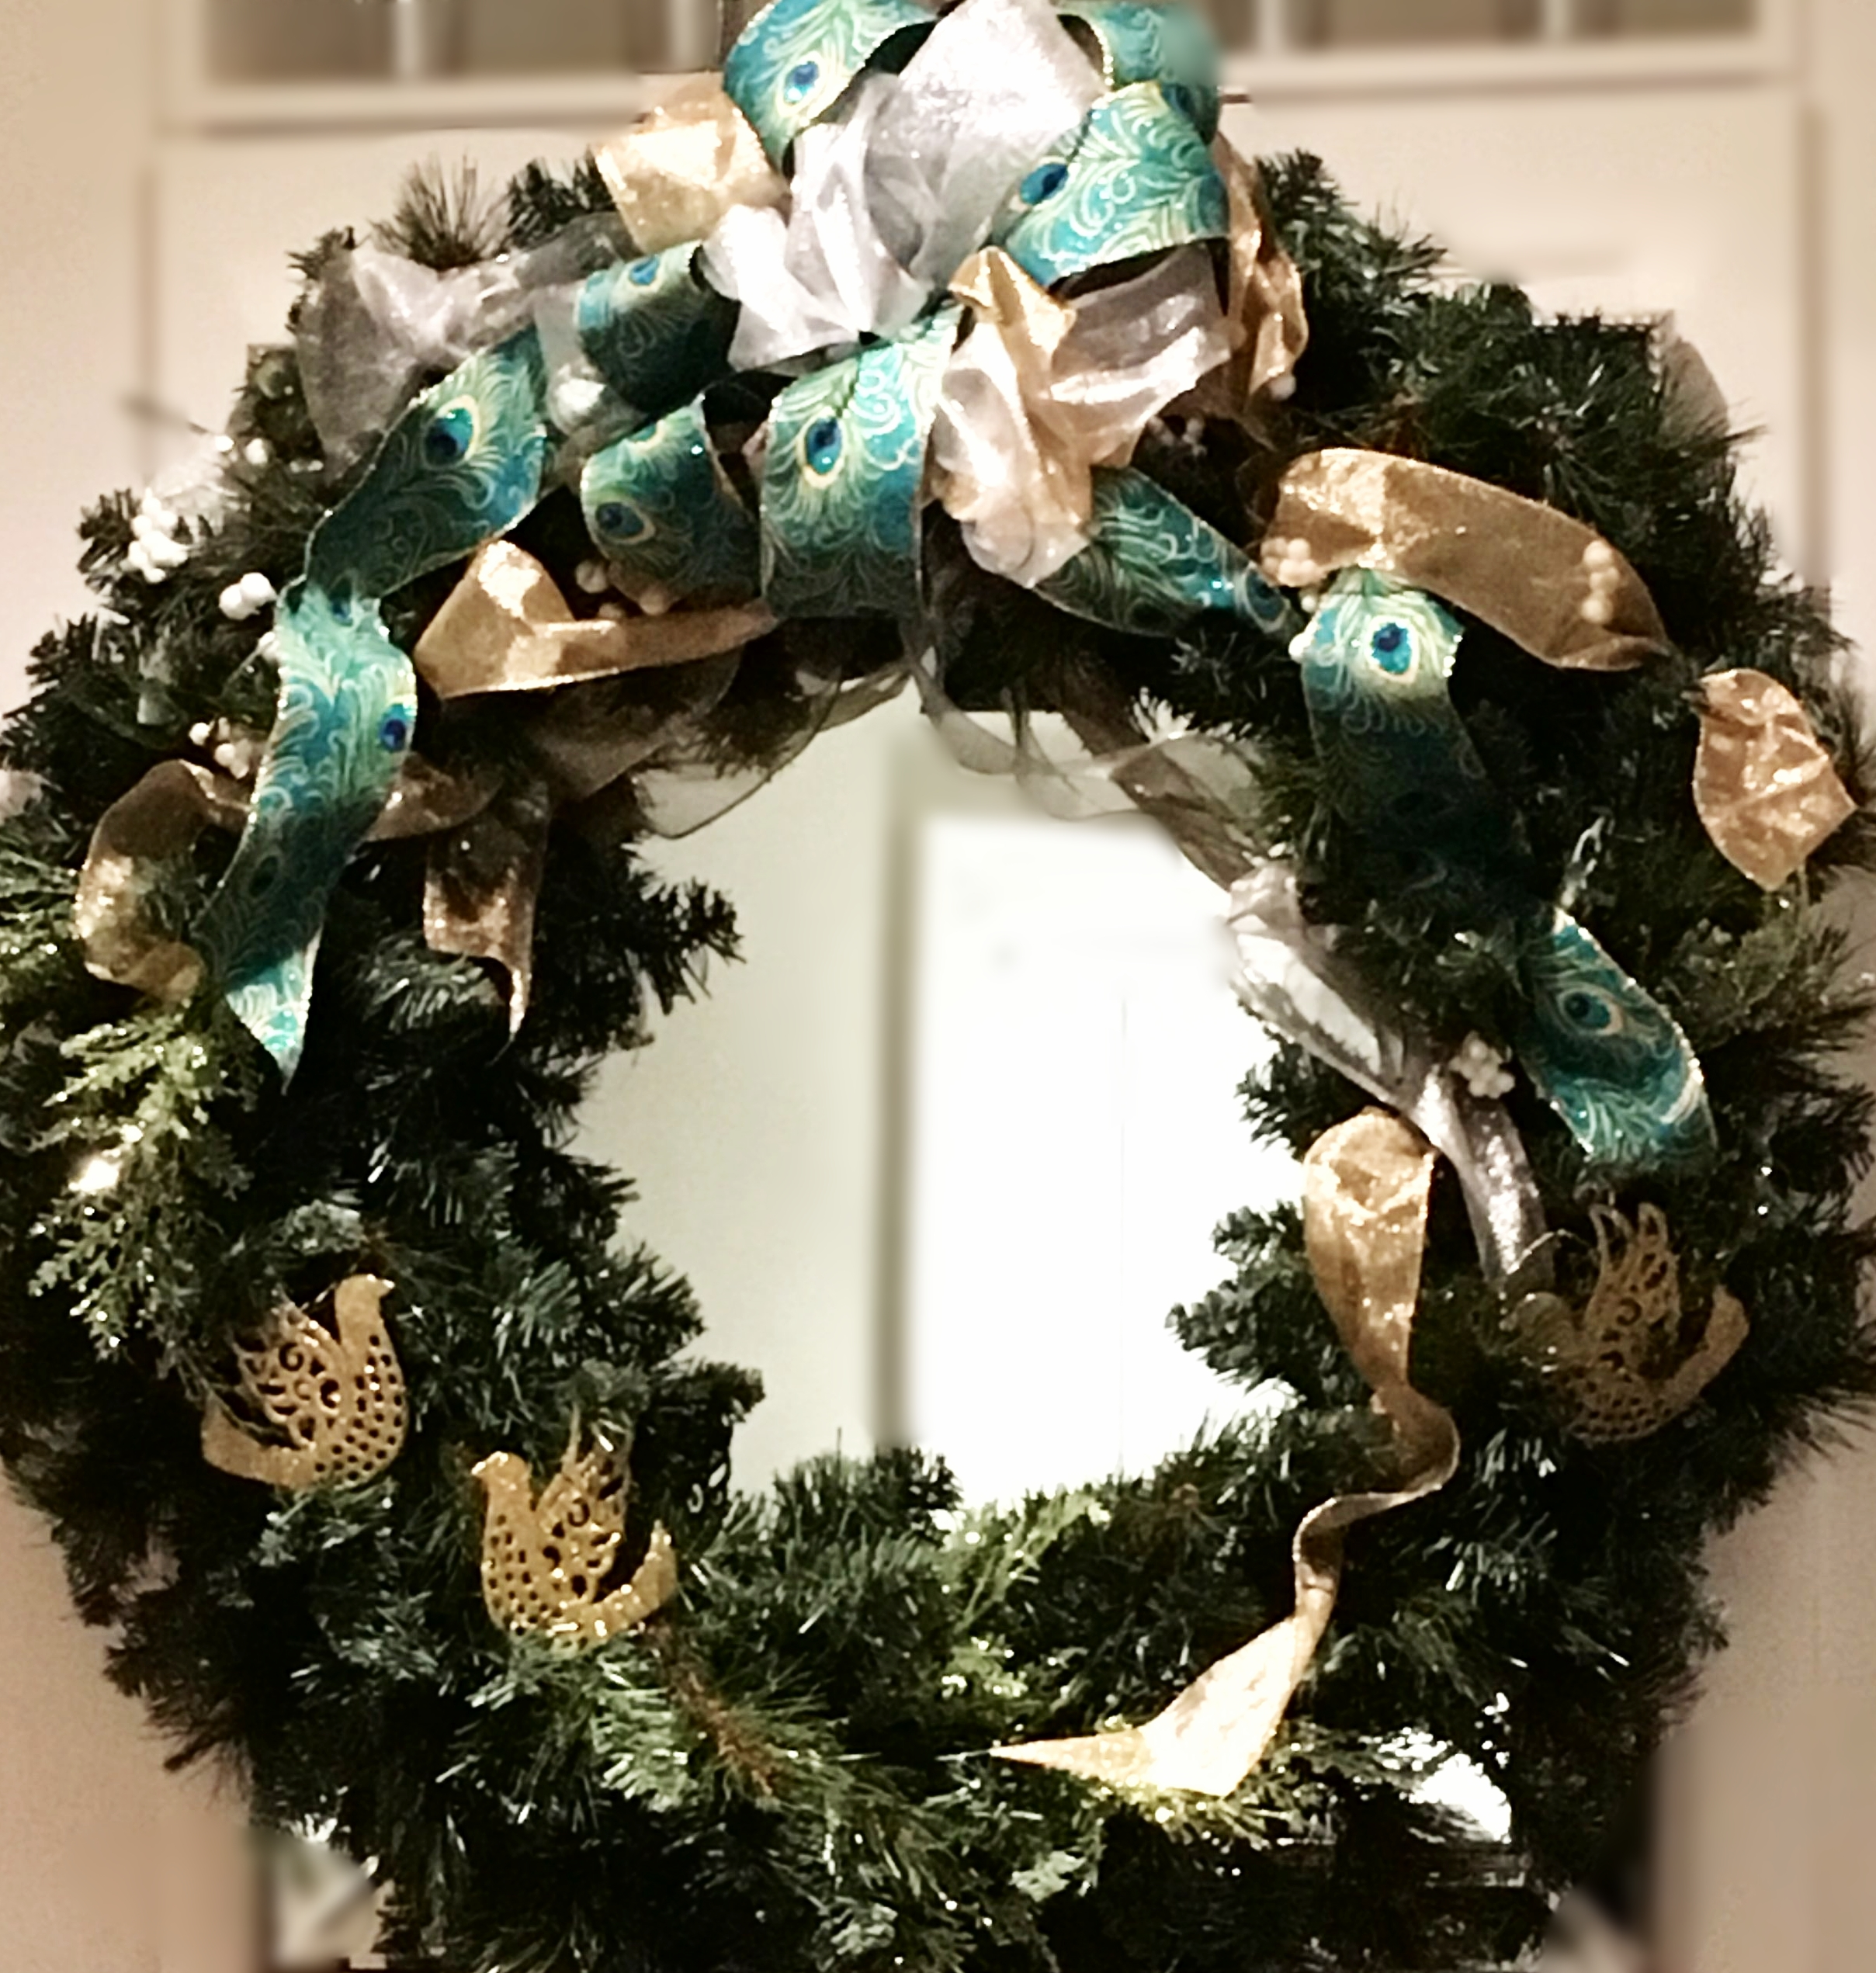 A large wreath over a fireplace is embellished with peacock ribbon mixed with gold and silver ribbon, glittered cedar greens, and gold bird ornaments